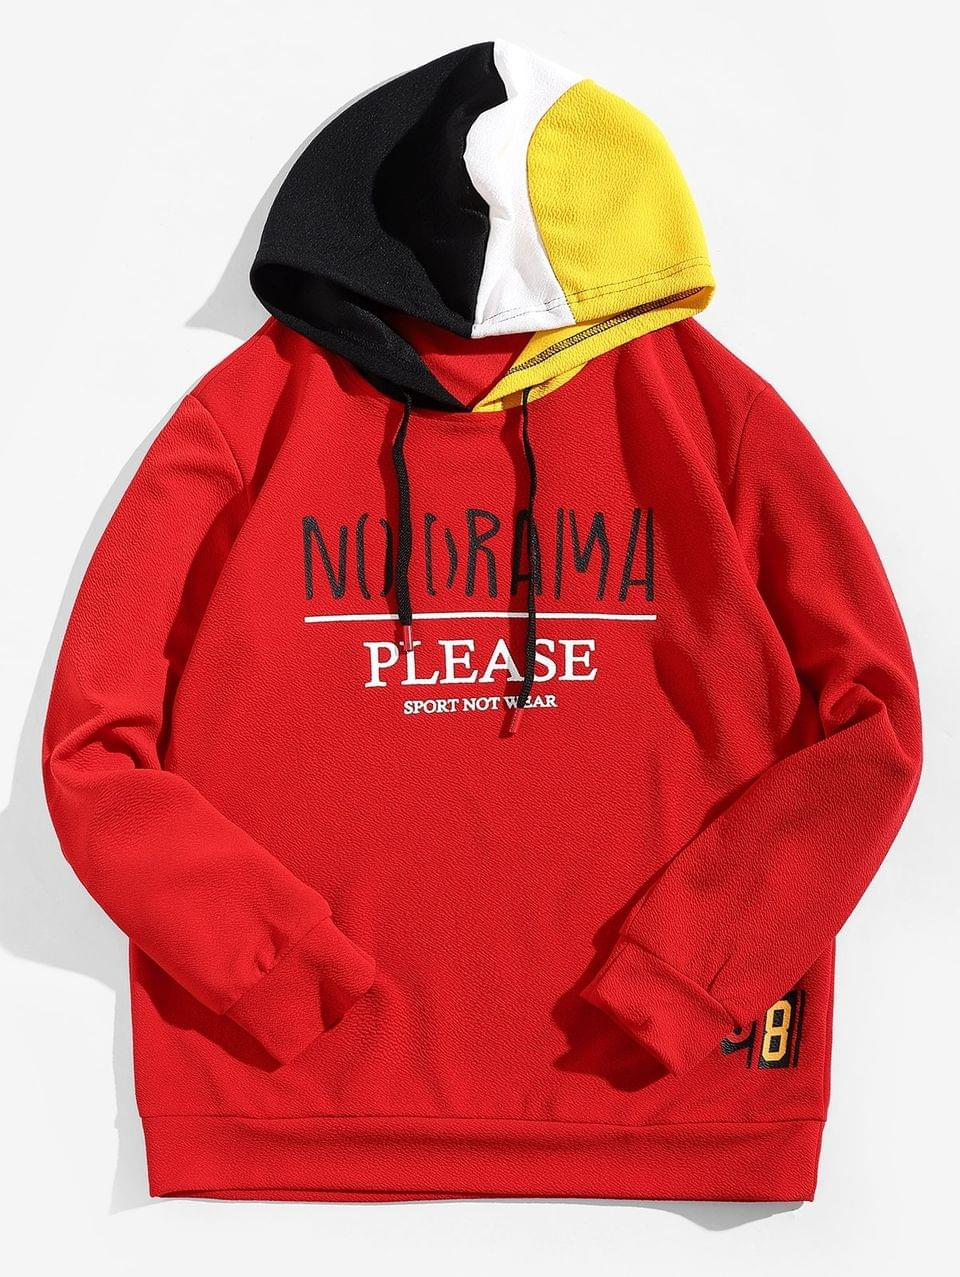 Men's Letter Graphic Color-blocking Spliced Hoodie - Red S